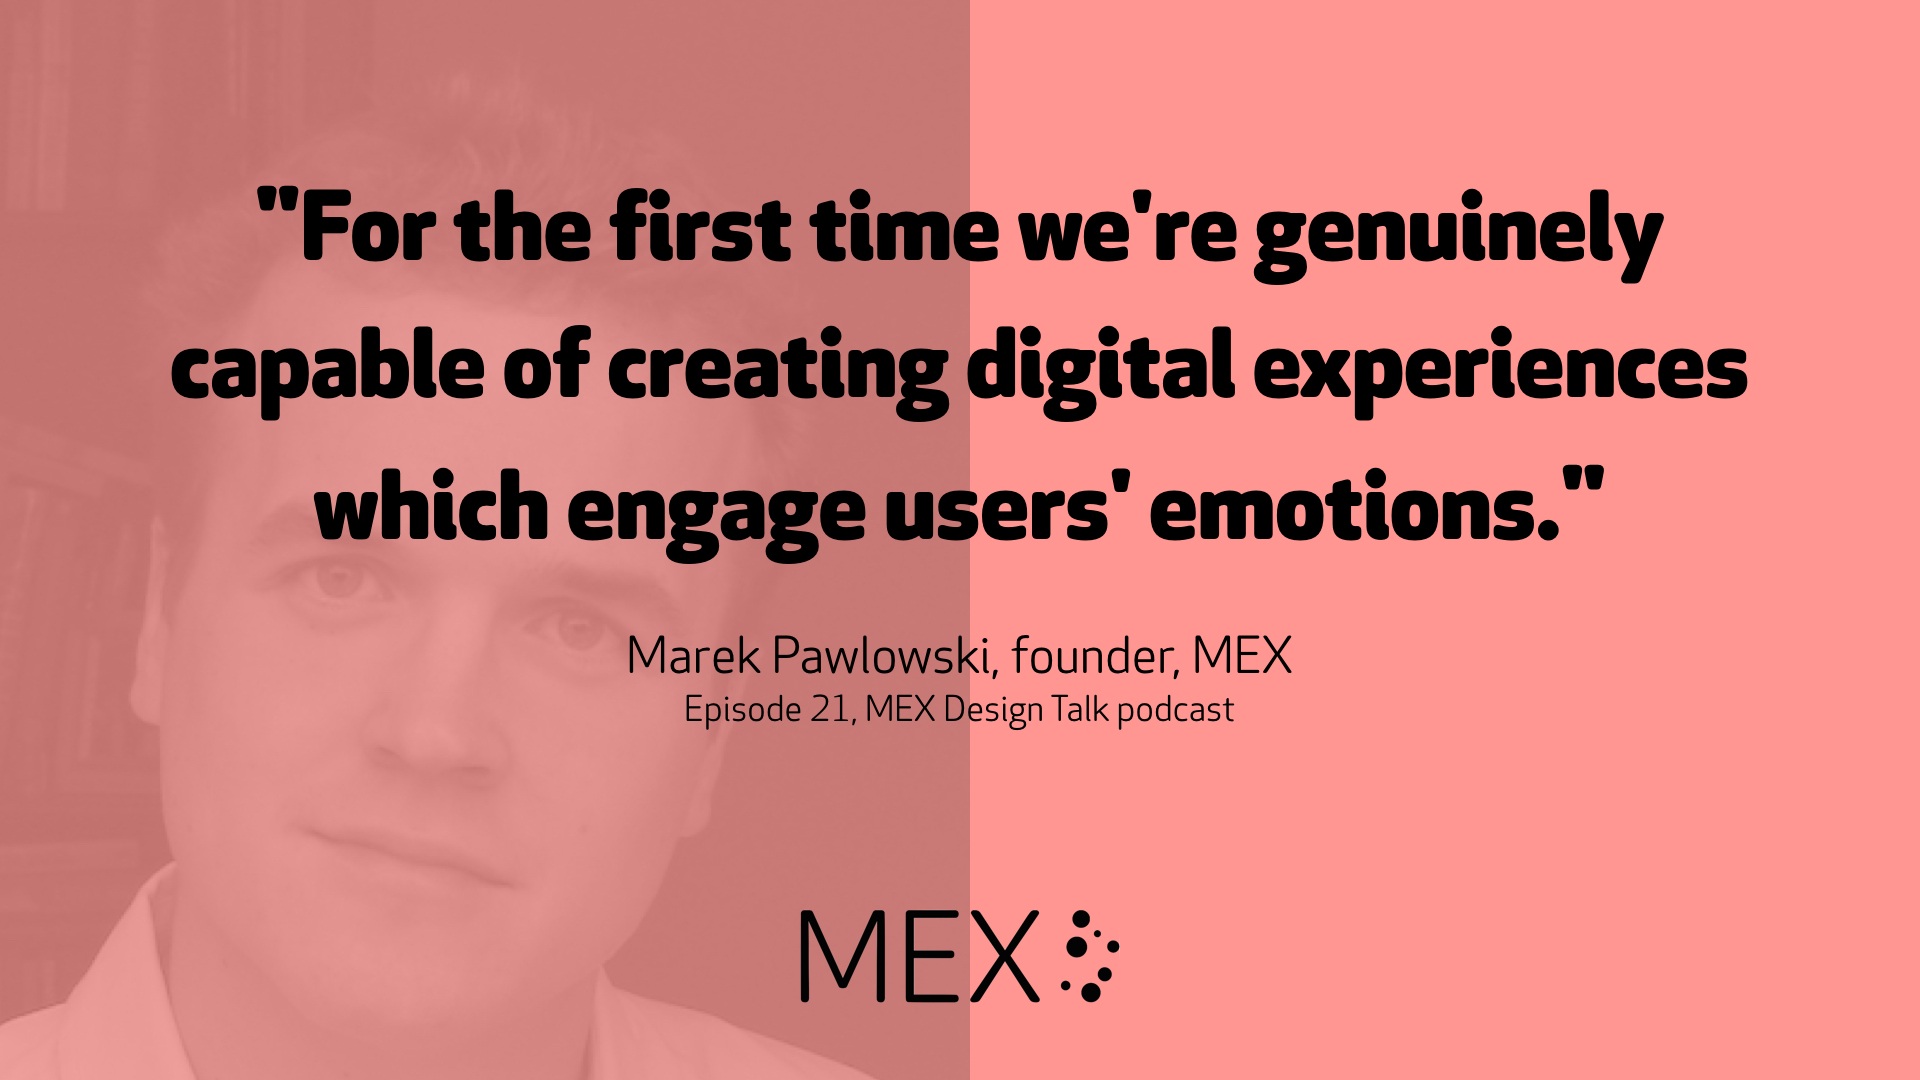 """For the first time we're genuinely capable of creating digital experiences which engage users' emotions."" -- Marek Pawlowski, founder, MEX, Episode 21, MEX Design Talk podcast"